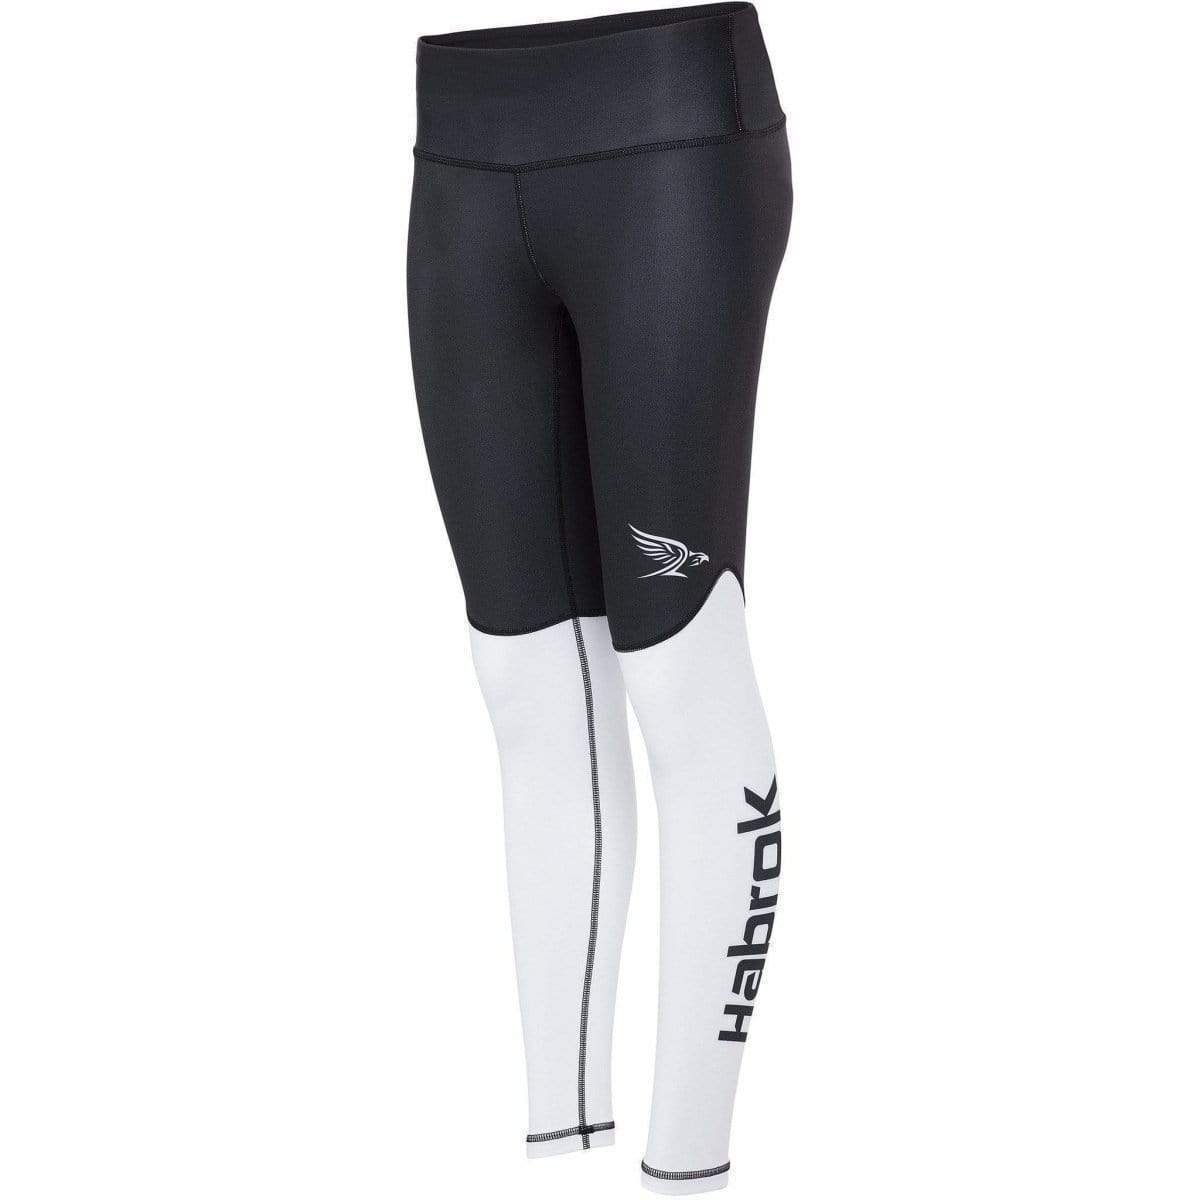 Habrok Spats XS / BLACK Transform 2.5 | Compression Pants | Women